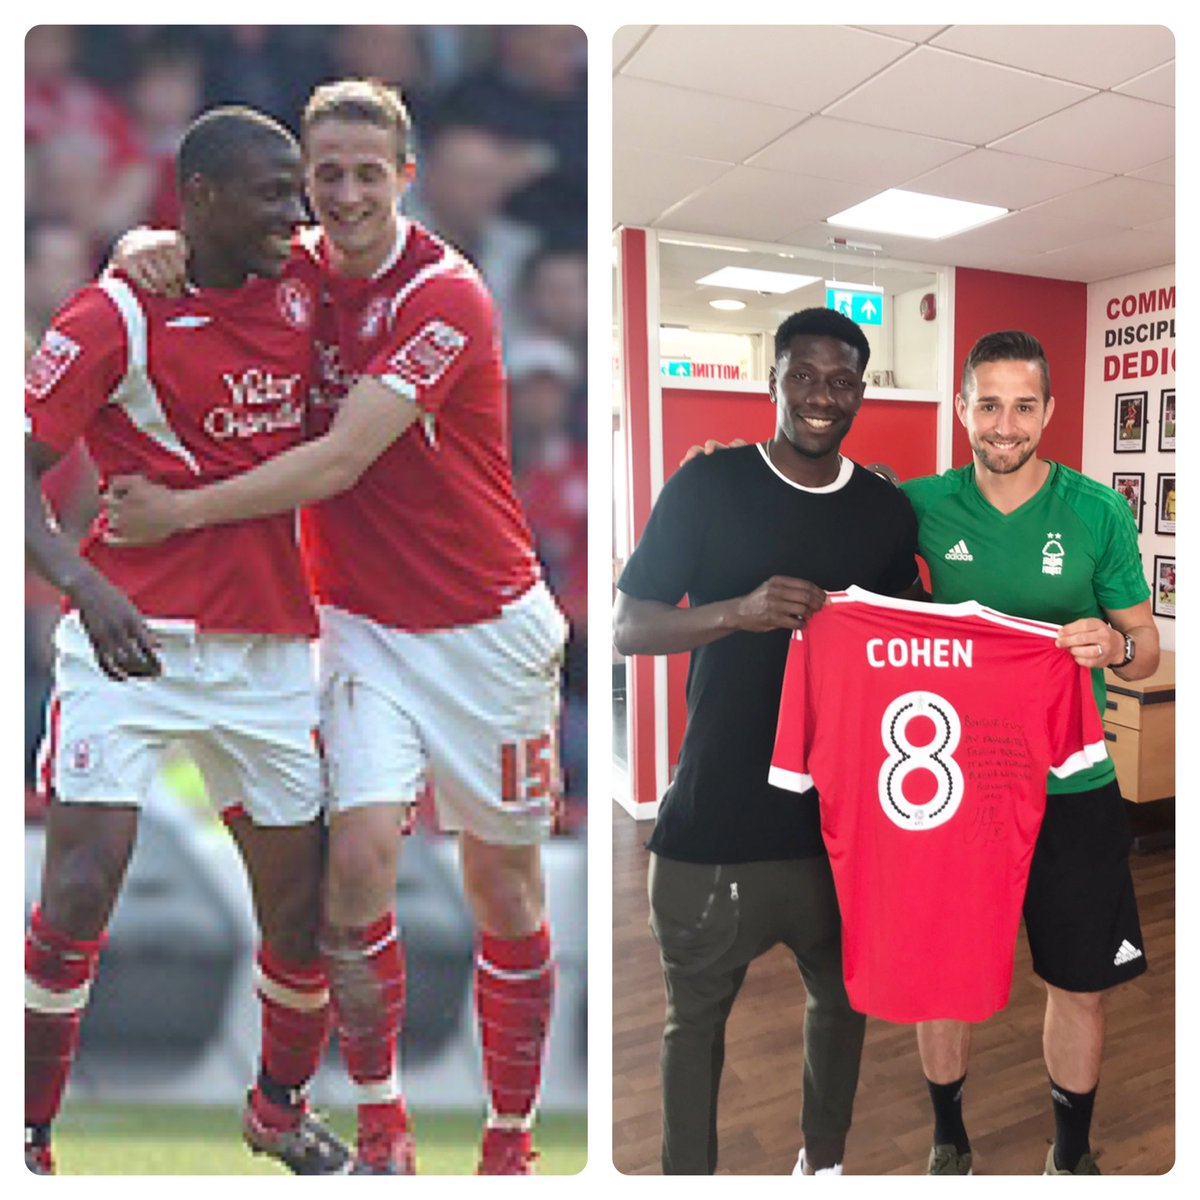 How about that #10YearsChallenge???  #Nffc Youuuuu Redsssss  <br>http://pic.twitter.com/bQYTdNf4Wl